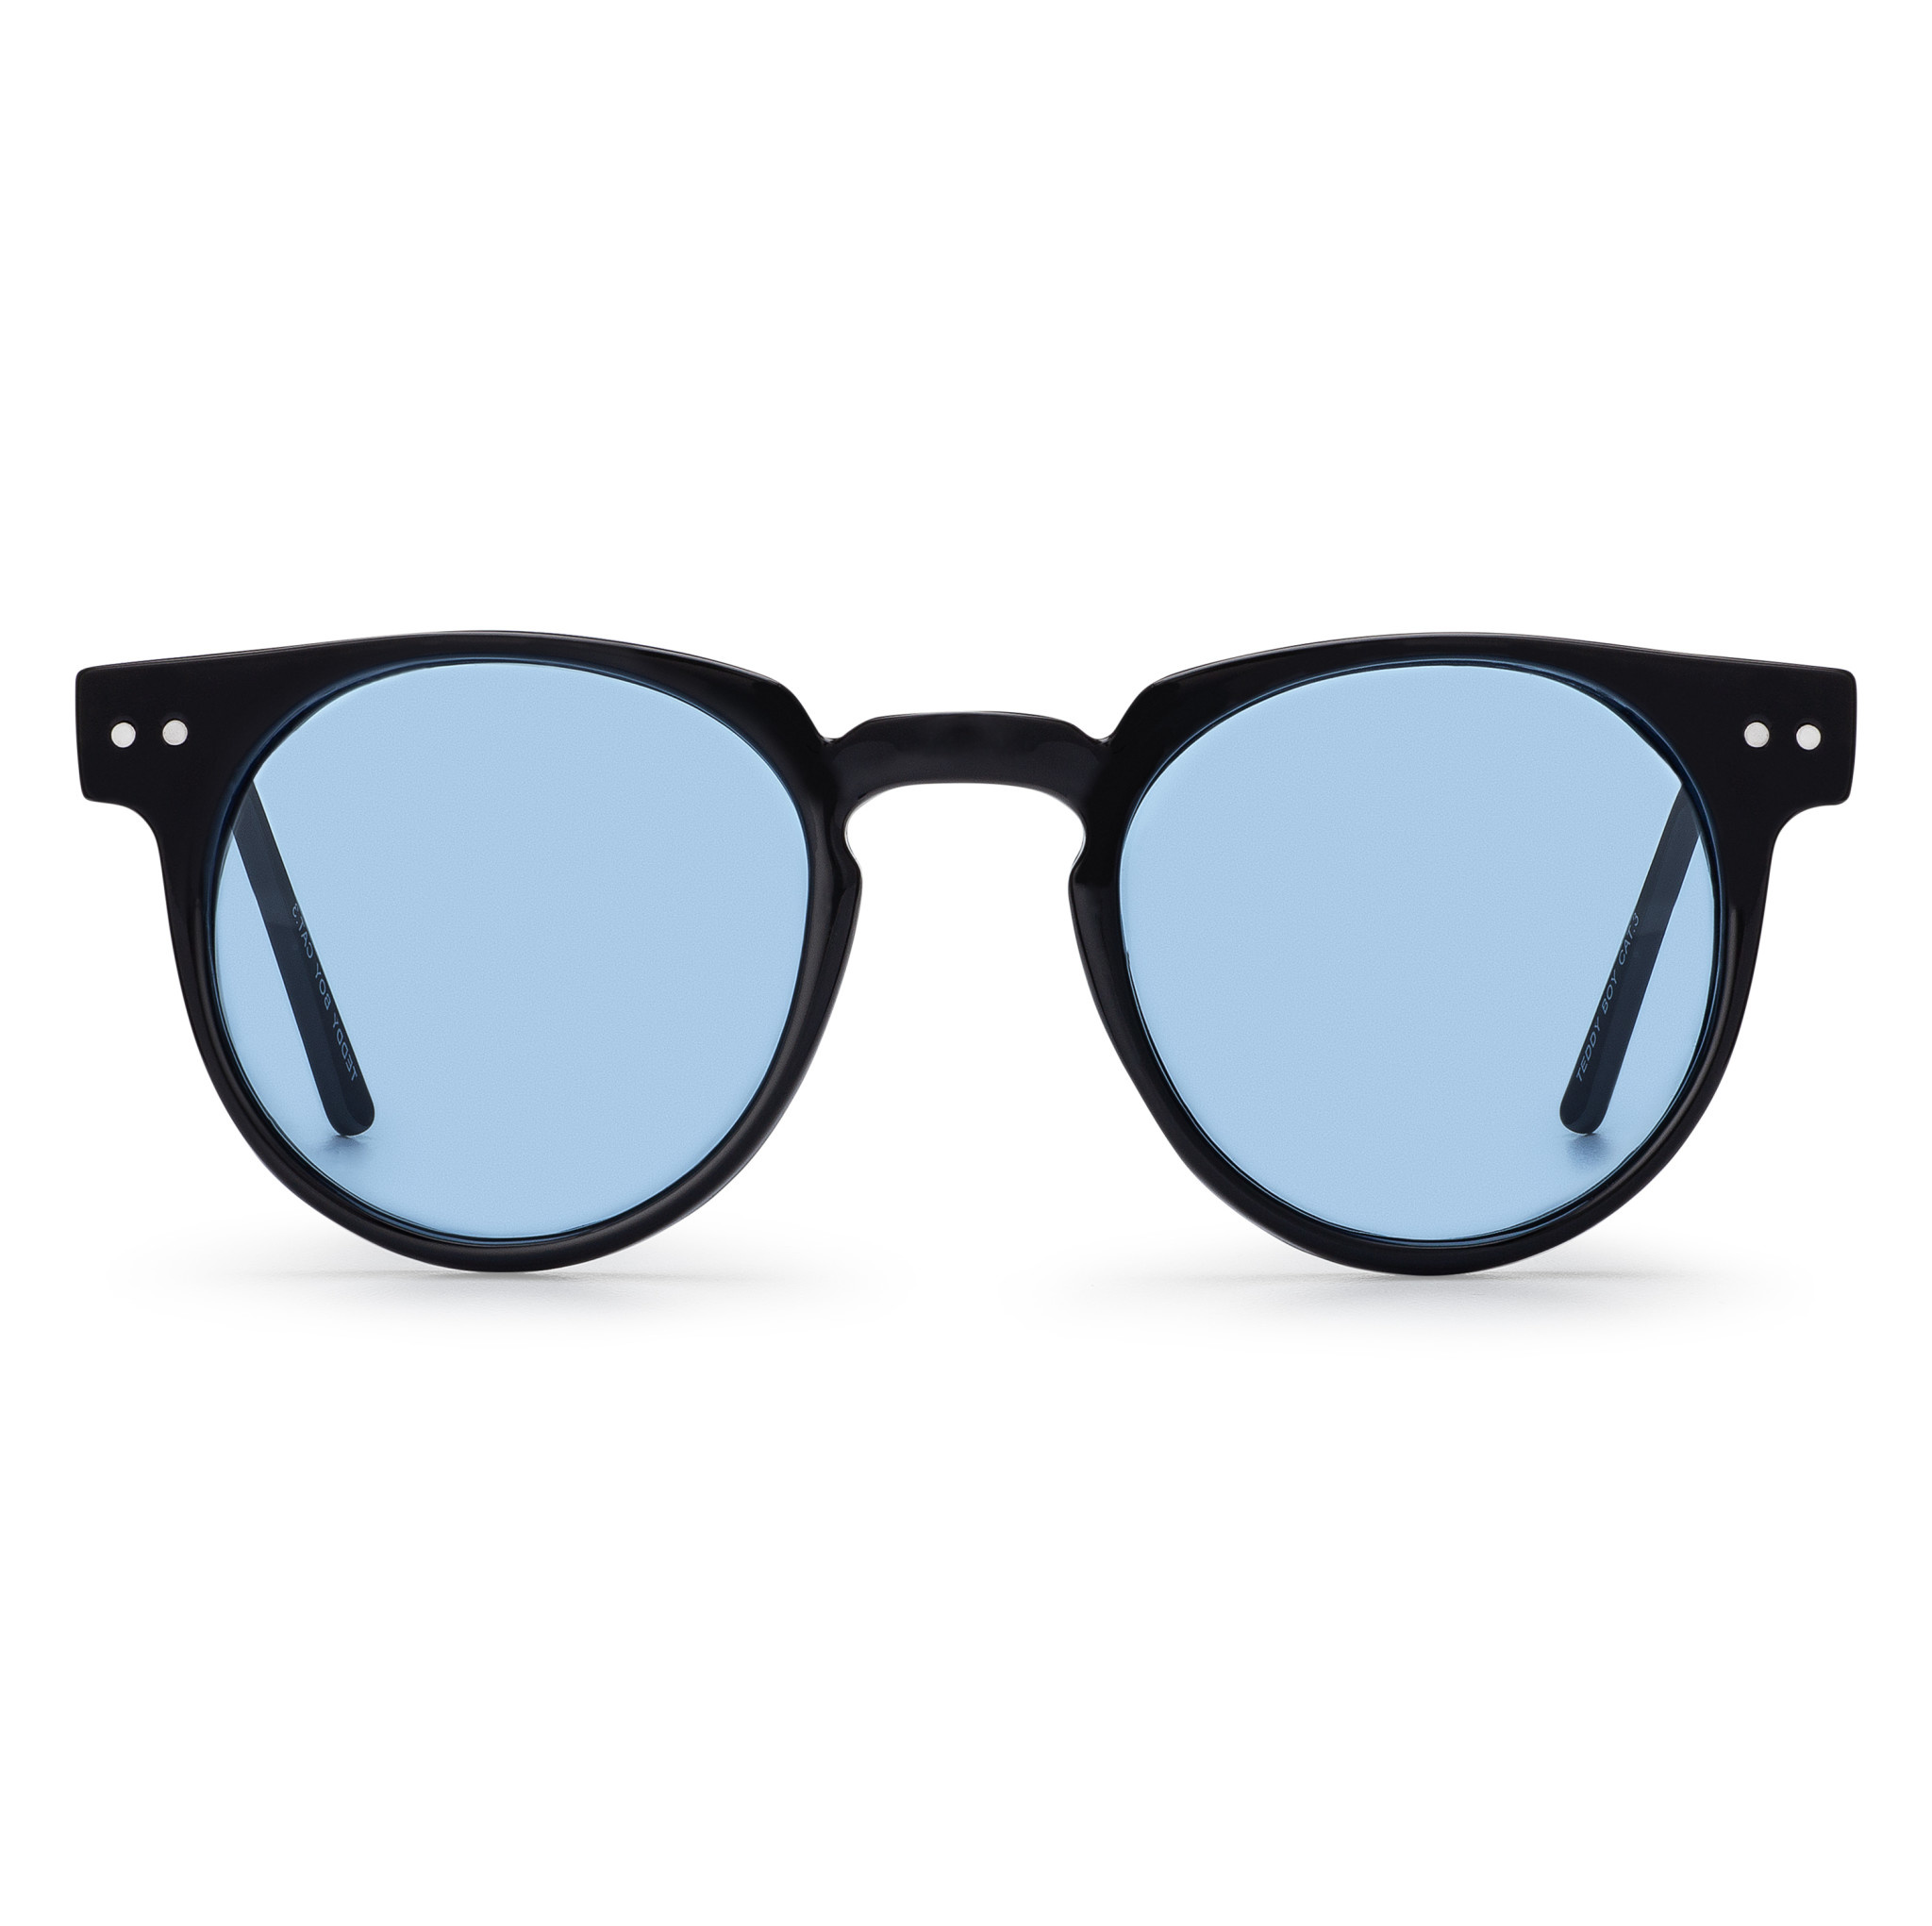 Spitfire Spitfire Teddy Boy - Black/Blue Mirror